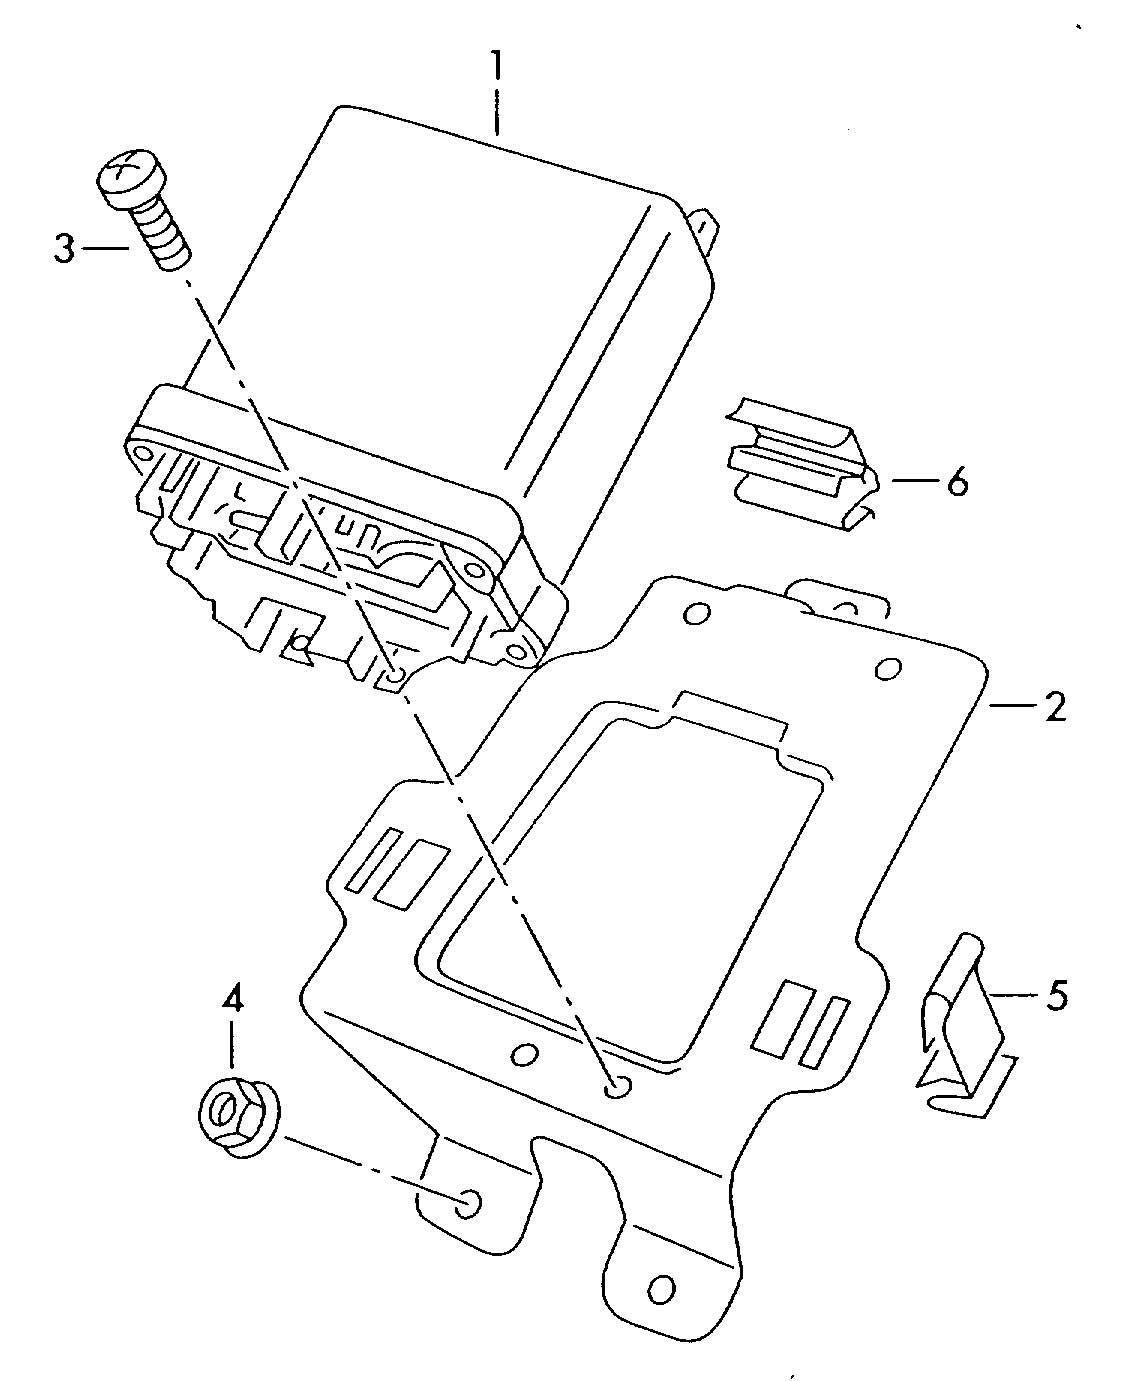 88 chevy s10 manual transmission diagram 91683 as well bmw m30 engine diagrams in addition vw